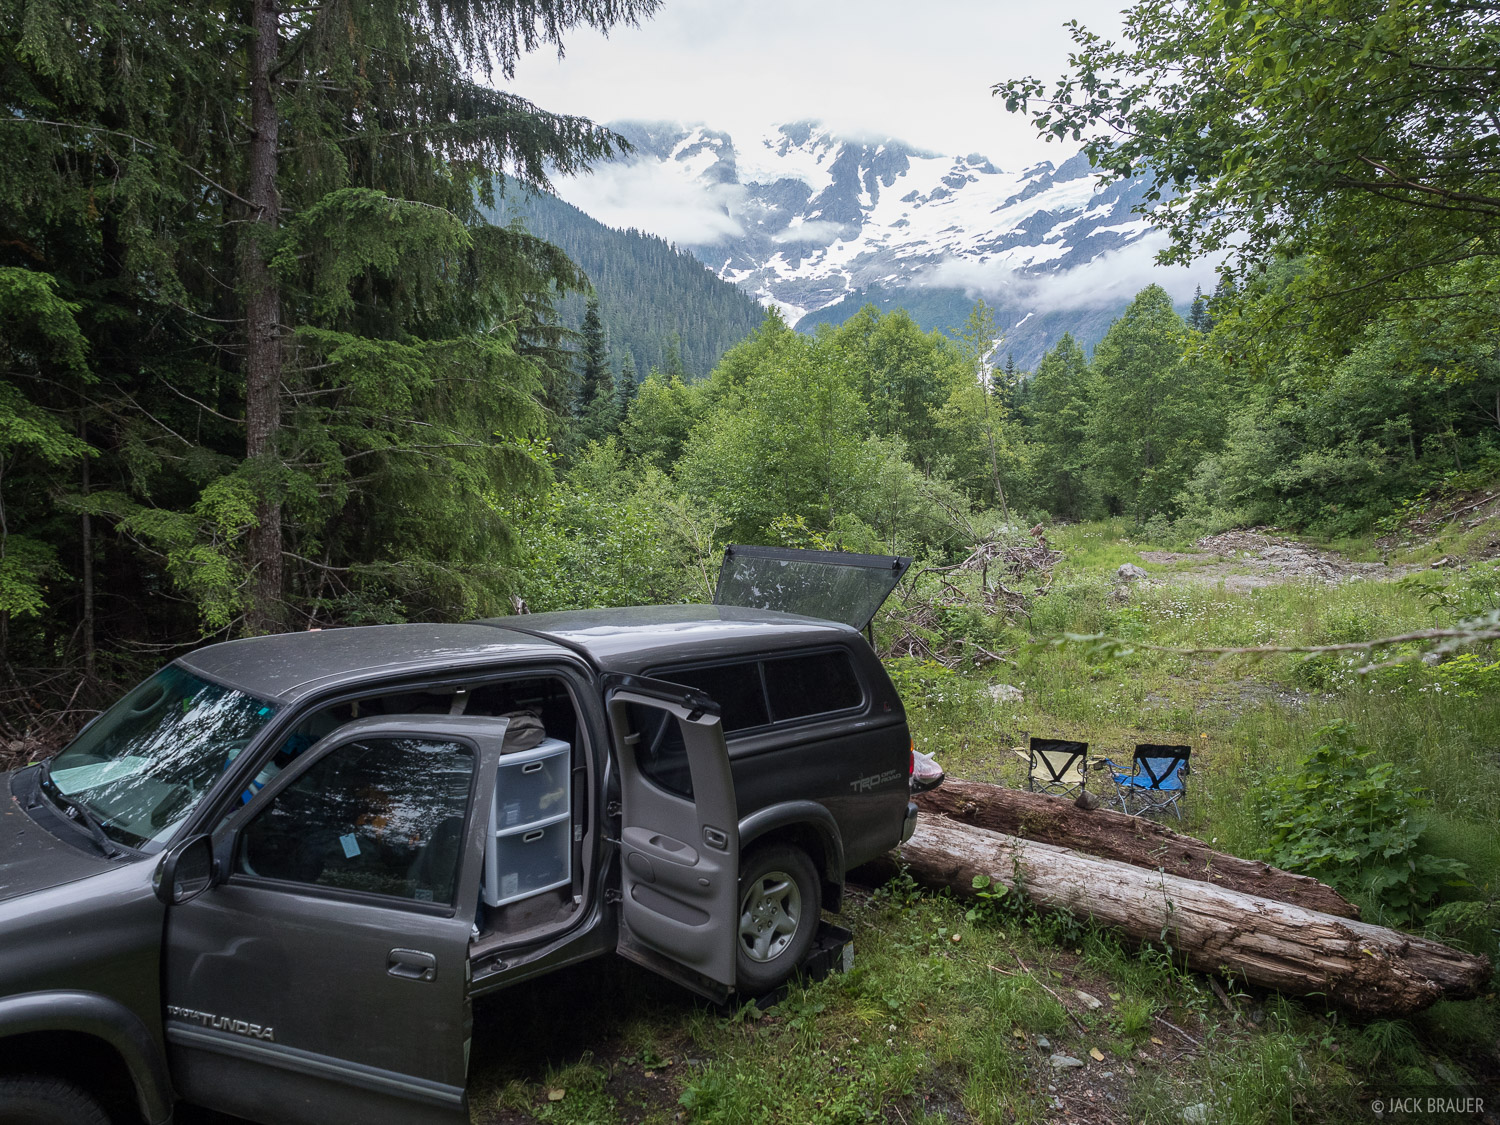 After our trek in the Alpine Lakes Wilderness, we drove north to Mount Shuksan where we found a random campspot that would have...